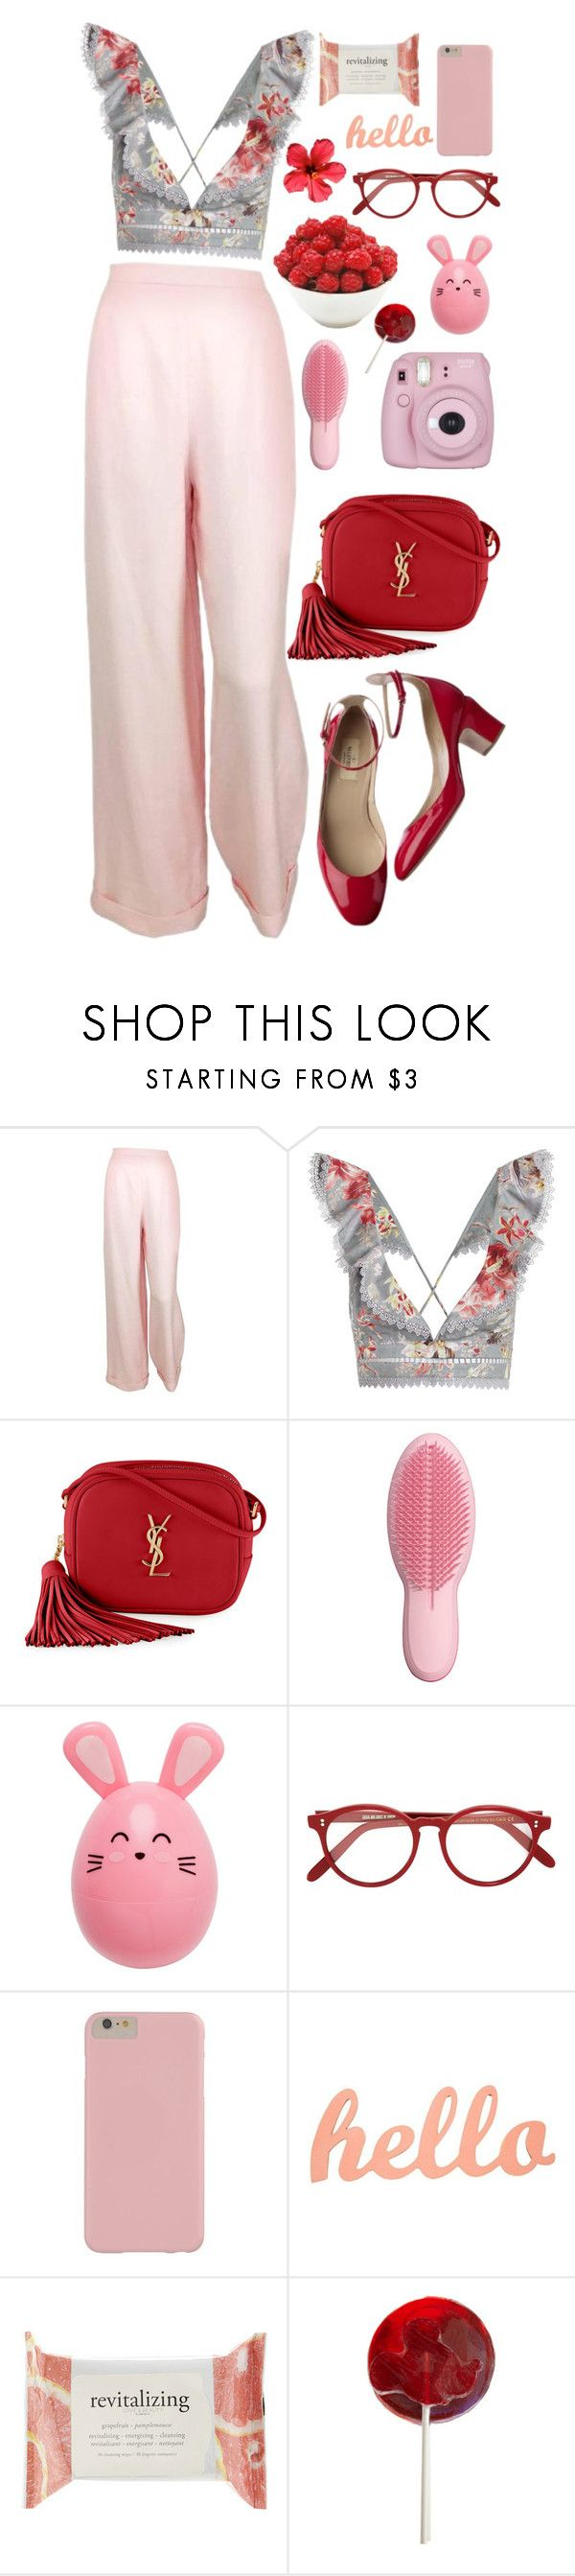 """""""Sin título #1777"""" by mrs-malfoy ❤ liked on Polyvore featuring Chanel, Valentino, Zimmermann, Yves Saint Laurent, Fujifilm, Tangle Teezer, Cutler and Gross, Forever 21, Disney and valentino"""